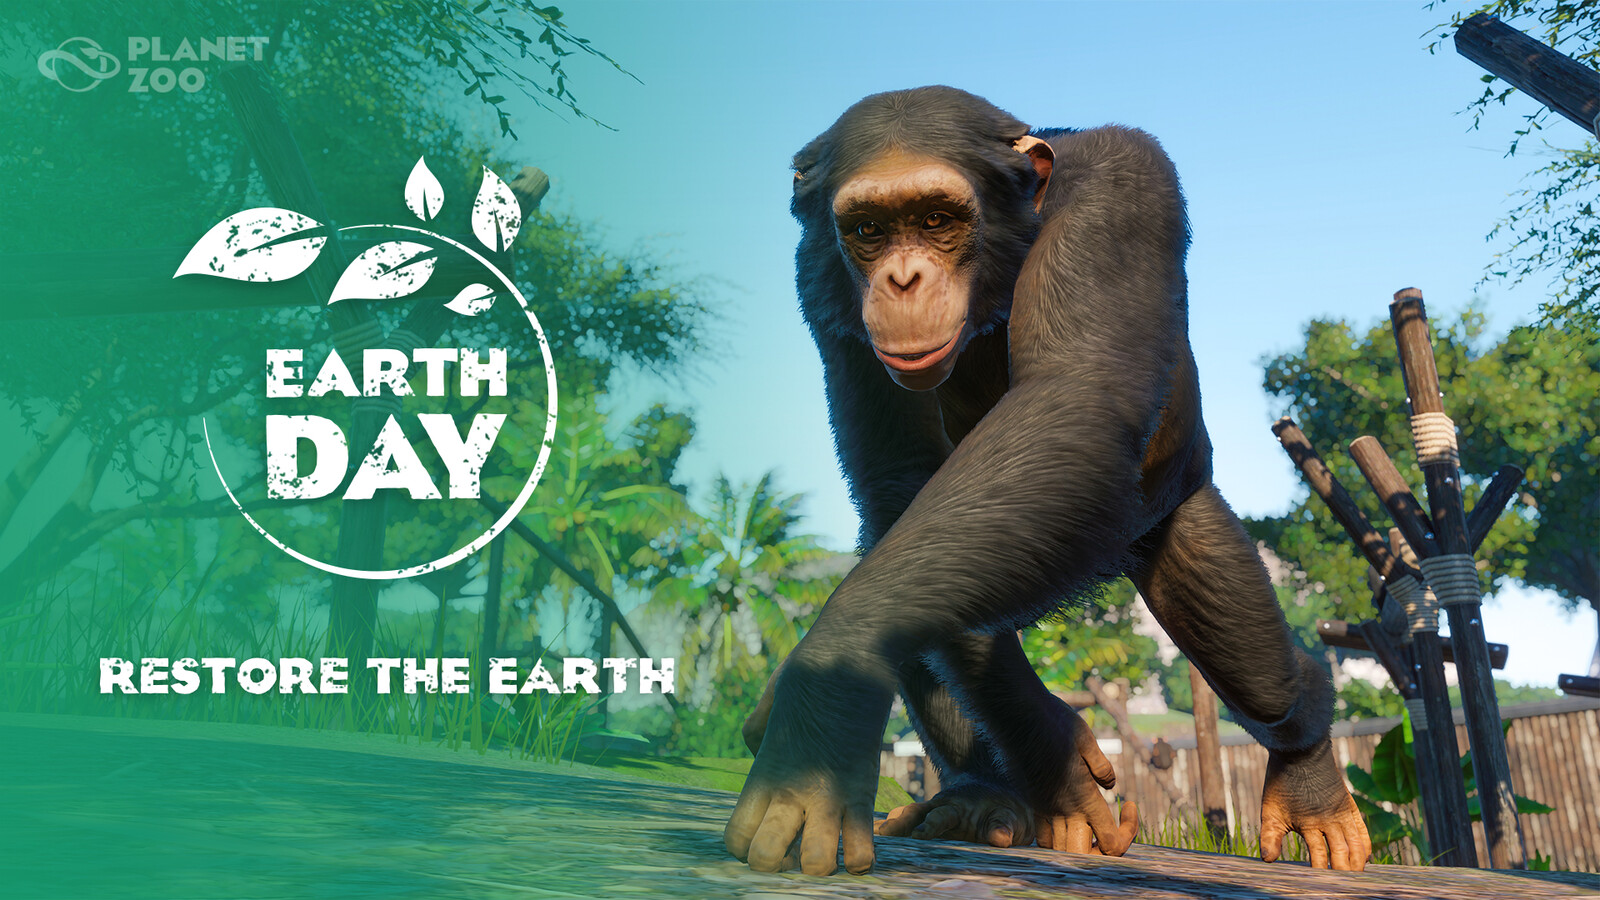 Planet Zoo - Earth Day